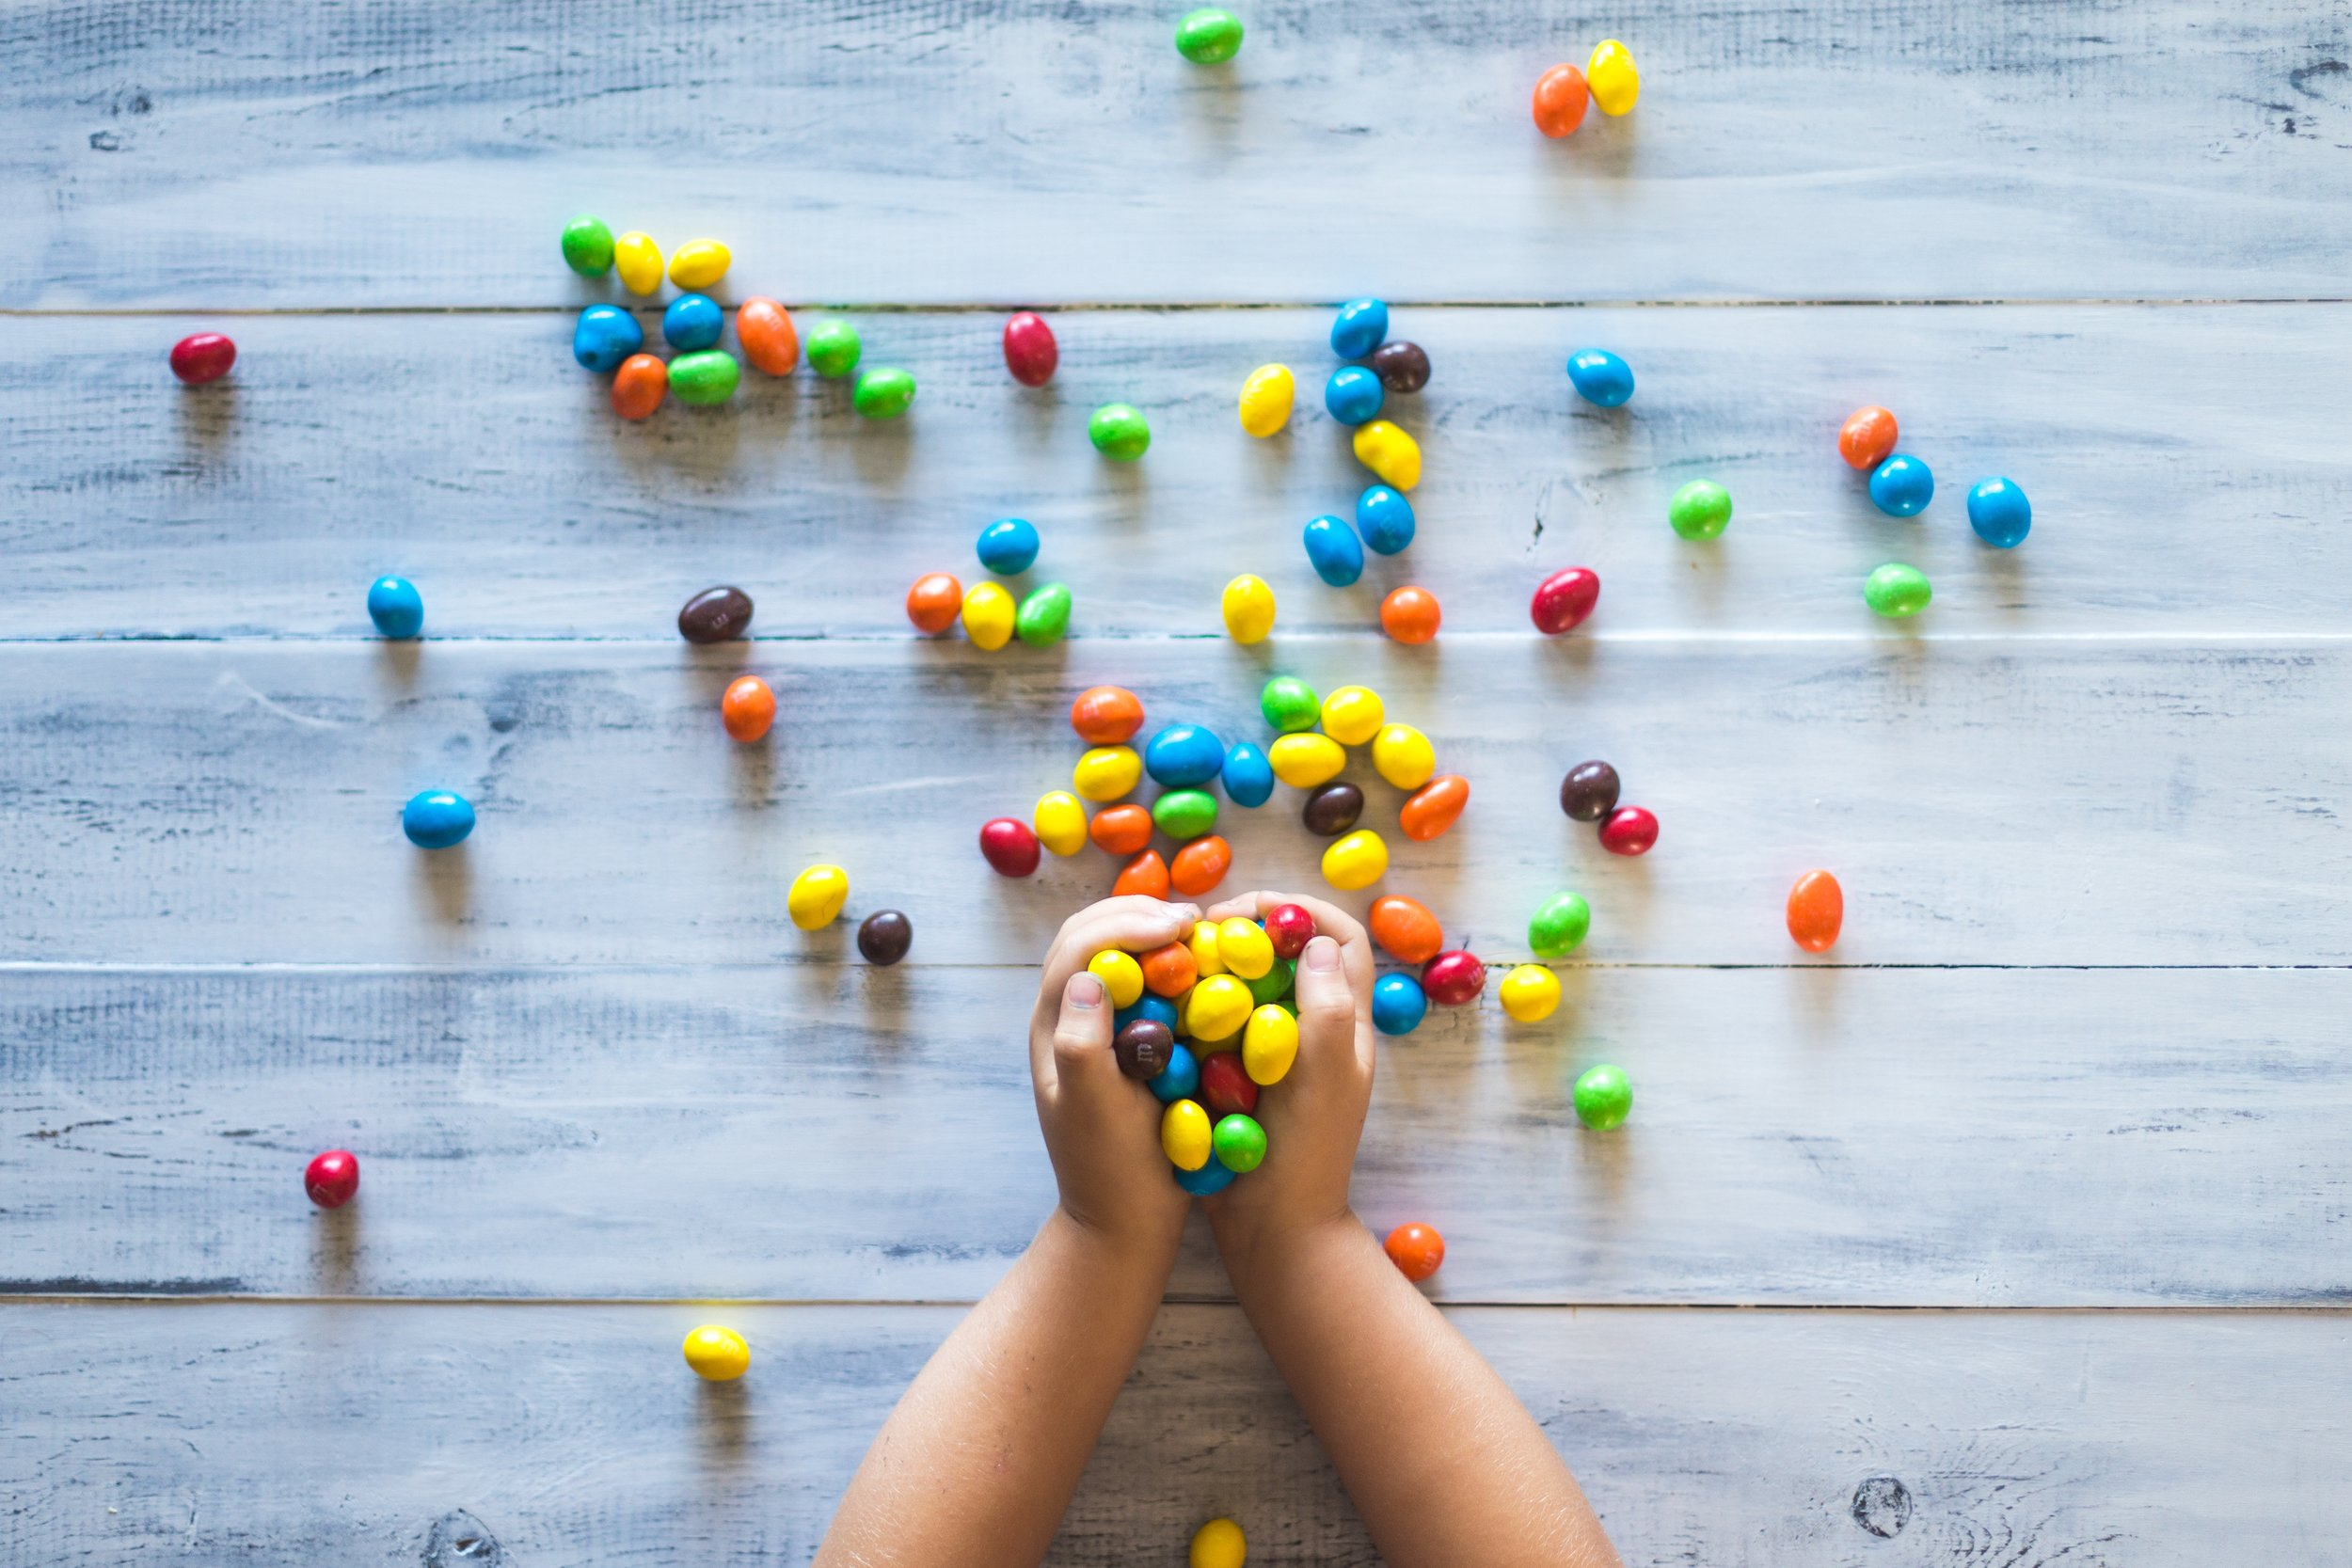 2. kids, leave some lollies for the hundreds of others! - And parents, your DONATIONS are very much appreciated.